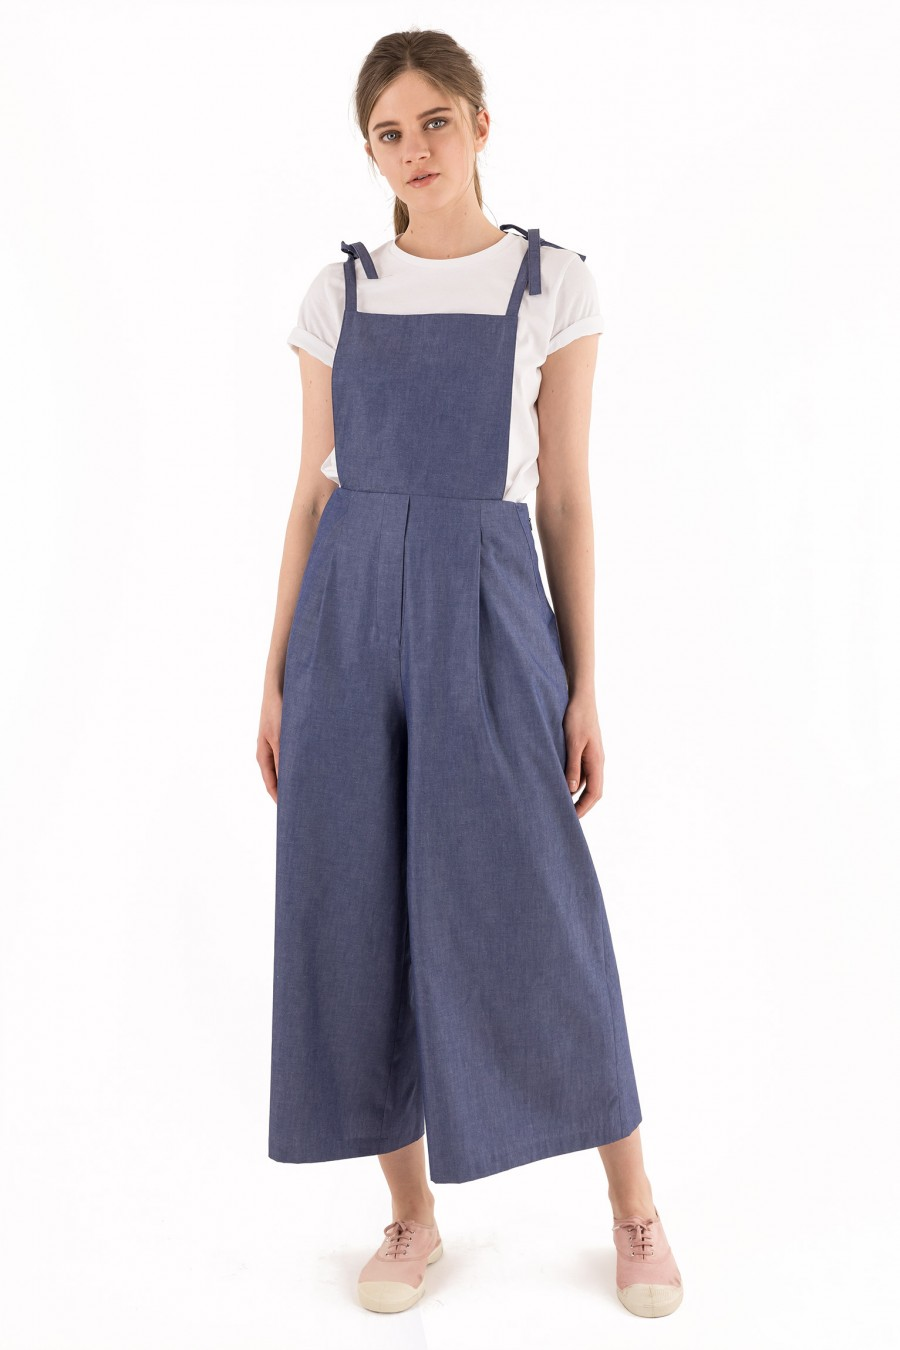 Everyday occasion overalls